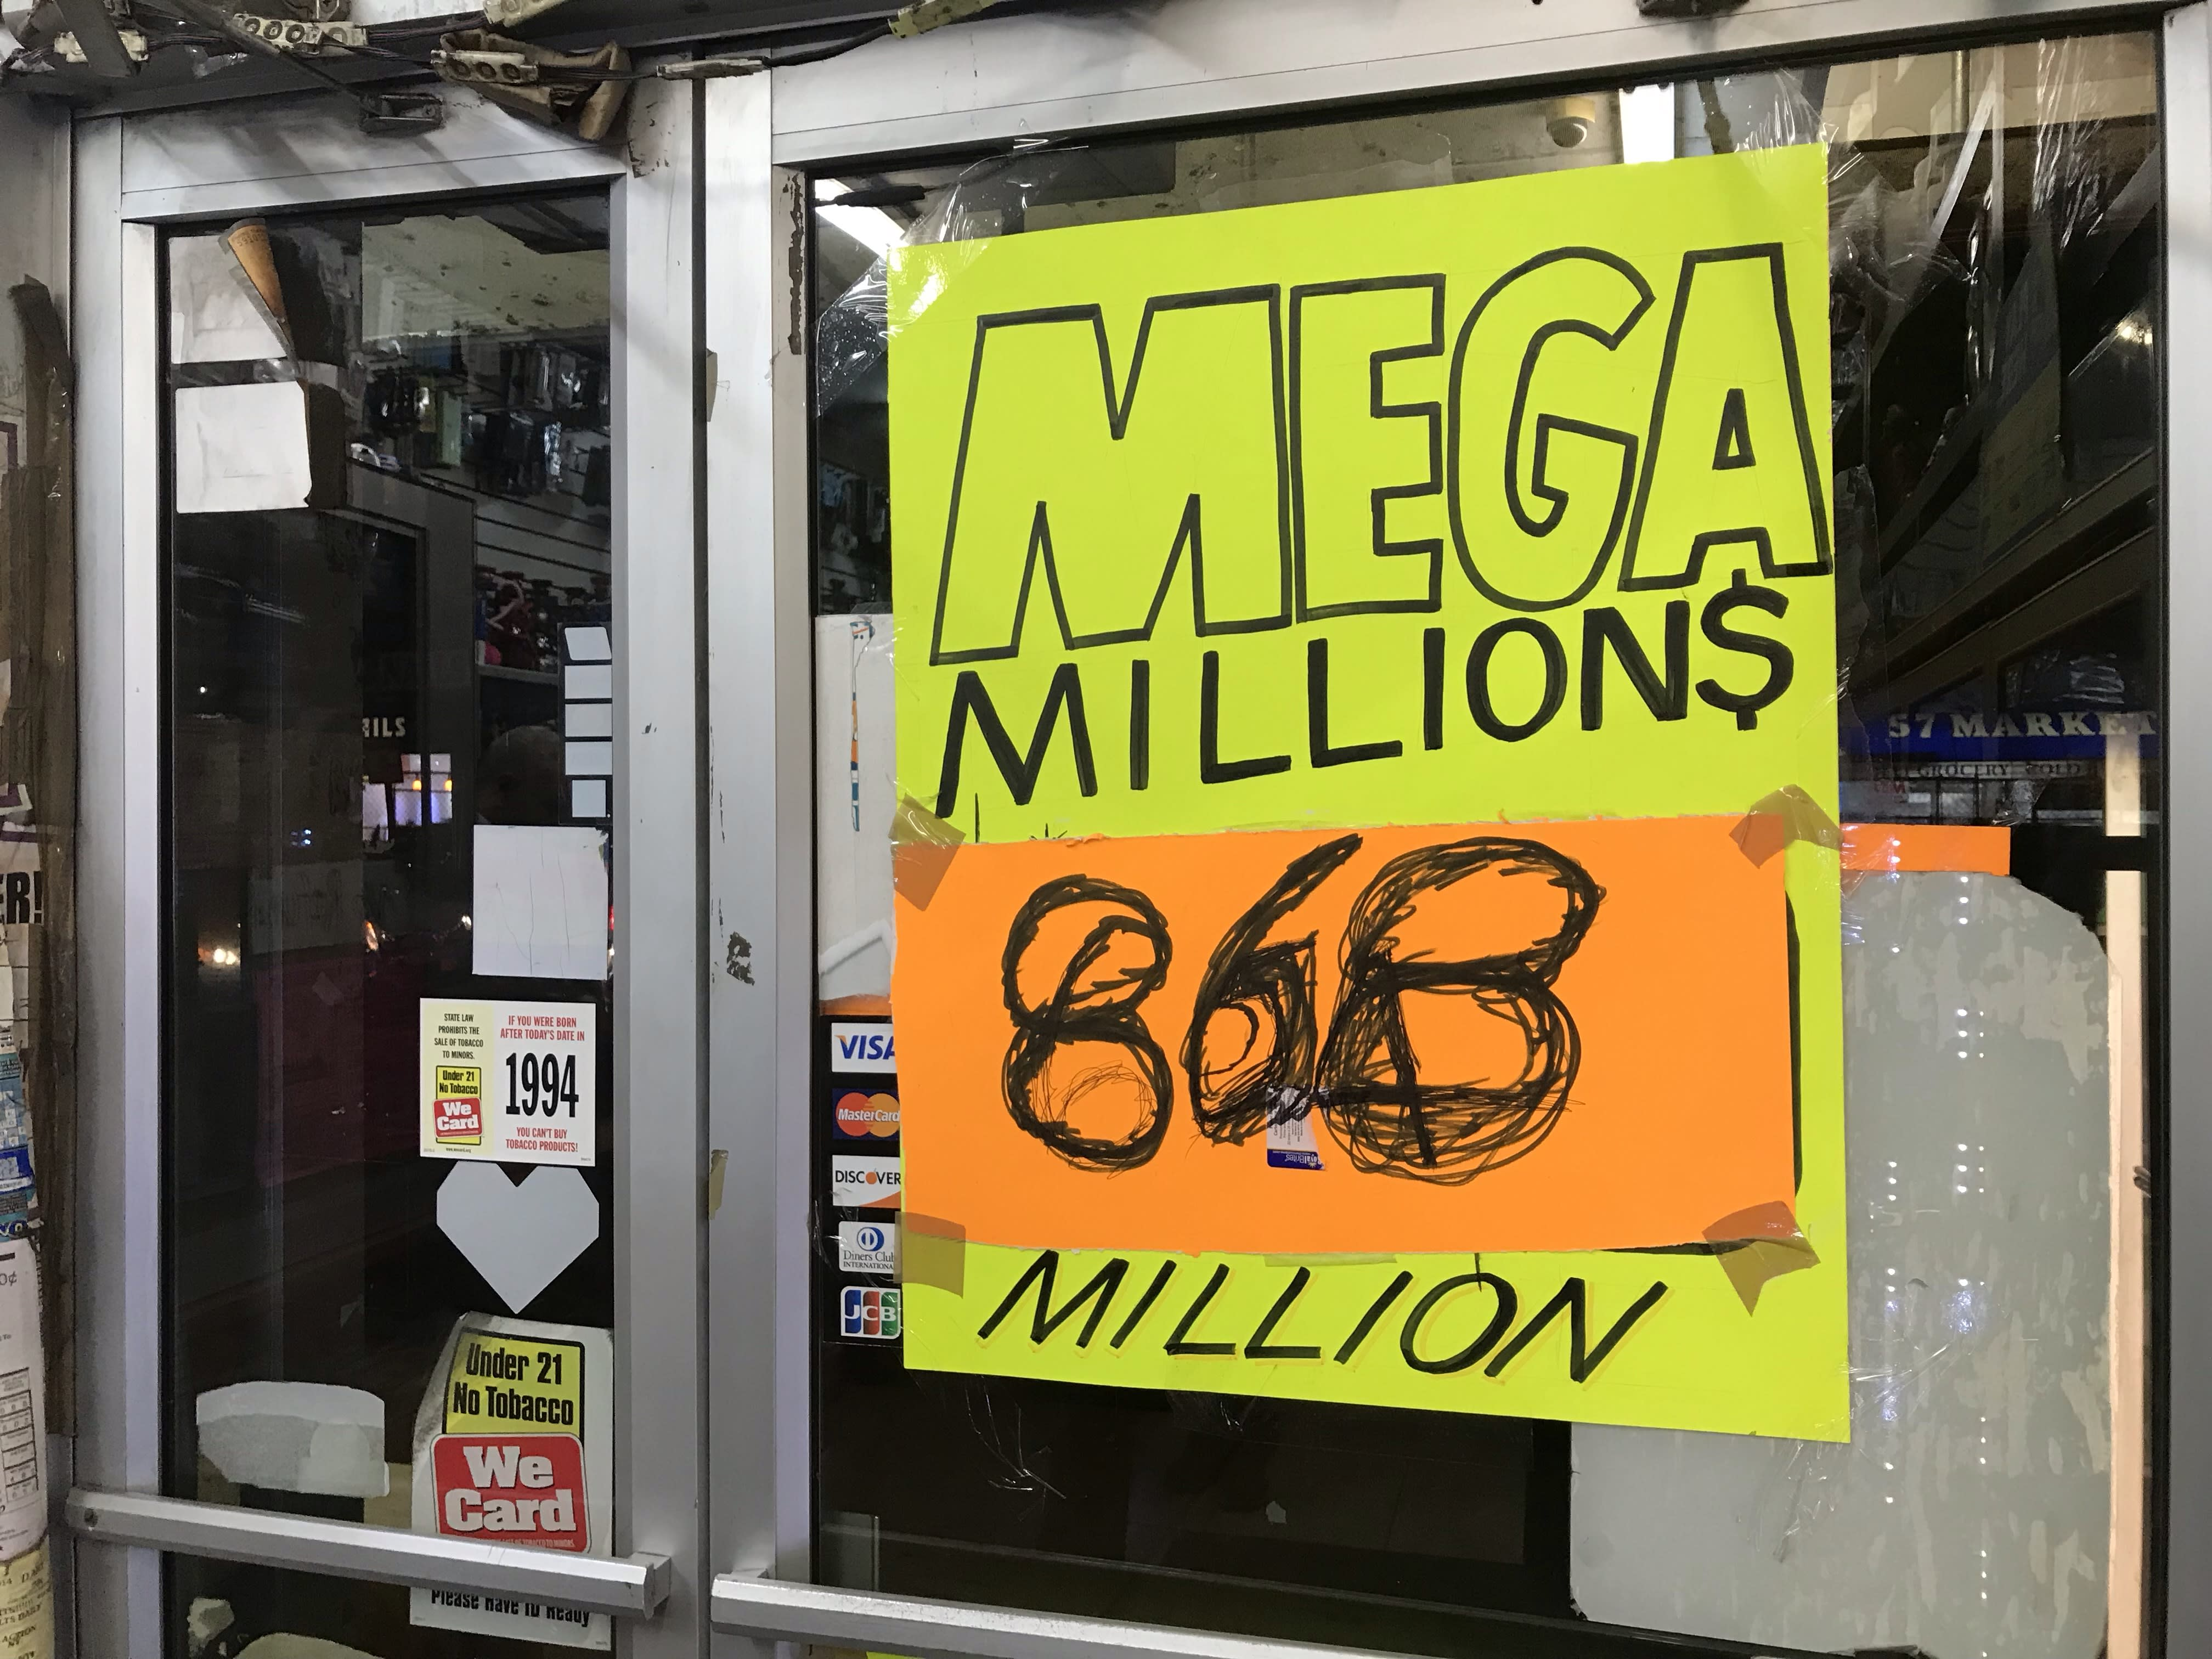 Winning the lottery is better in some states than others